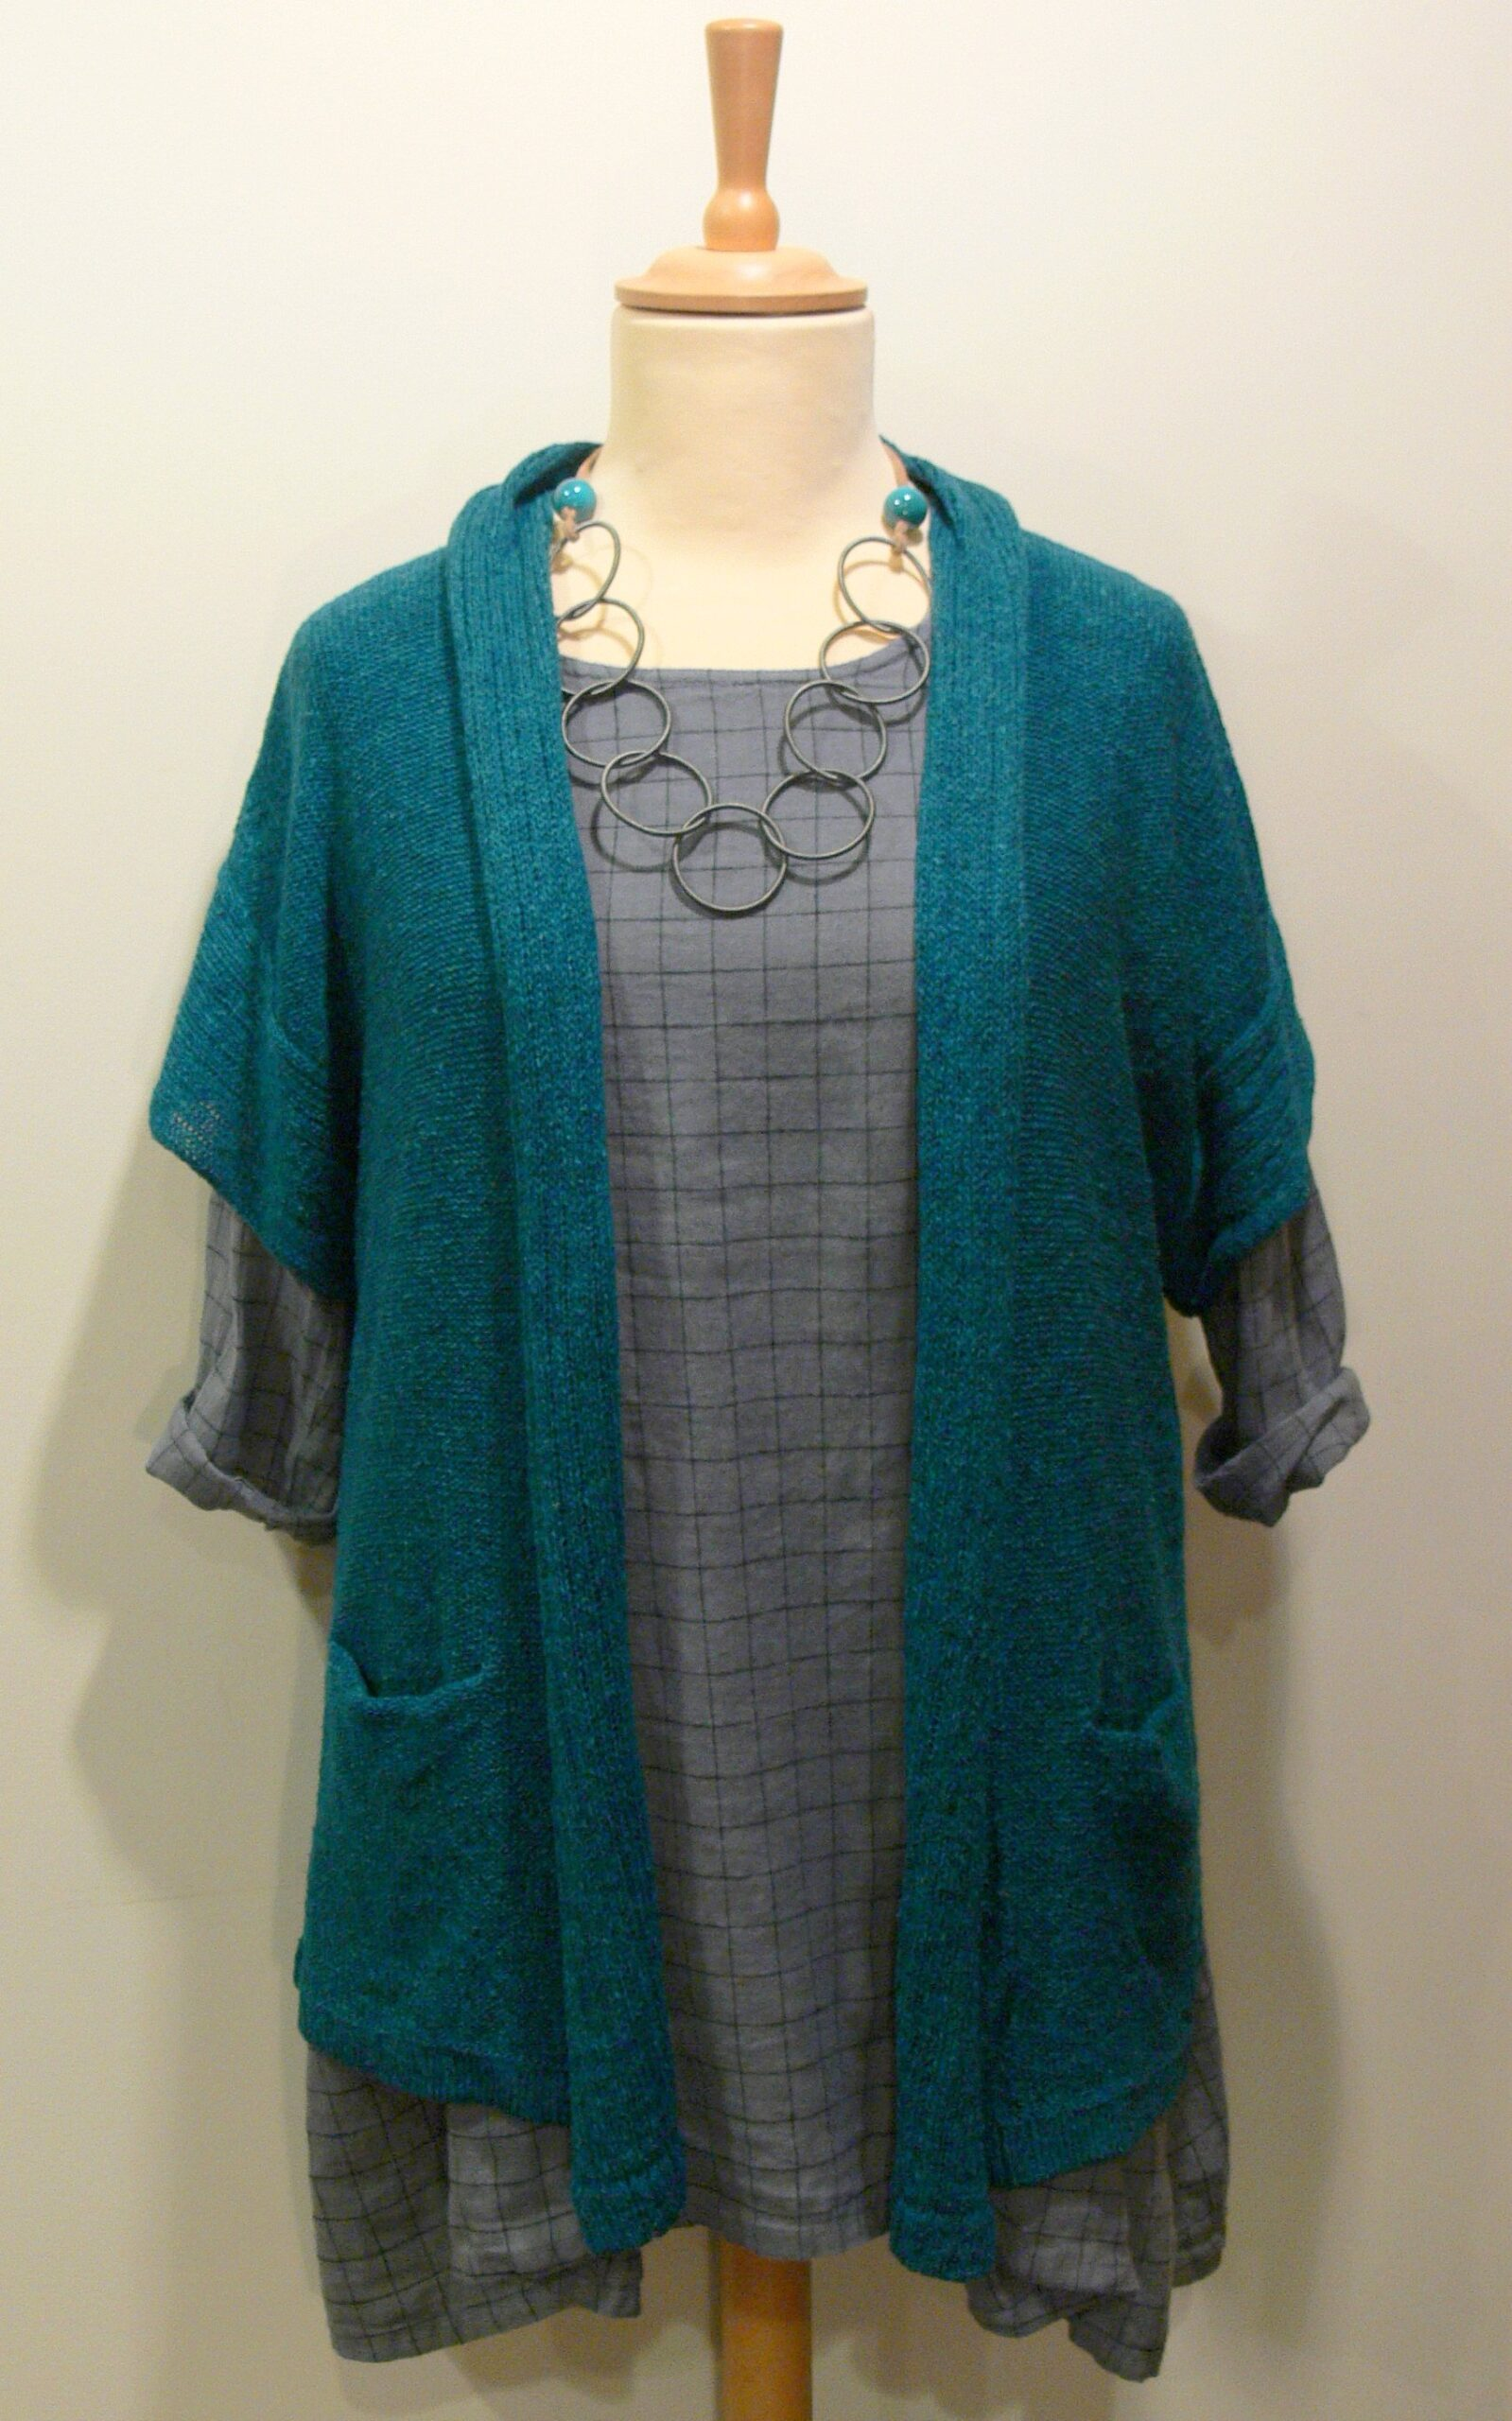 Firth Medium Waistcoat in teal. Knitted in silk/lambswool, designed and made in Orkney